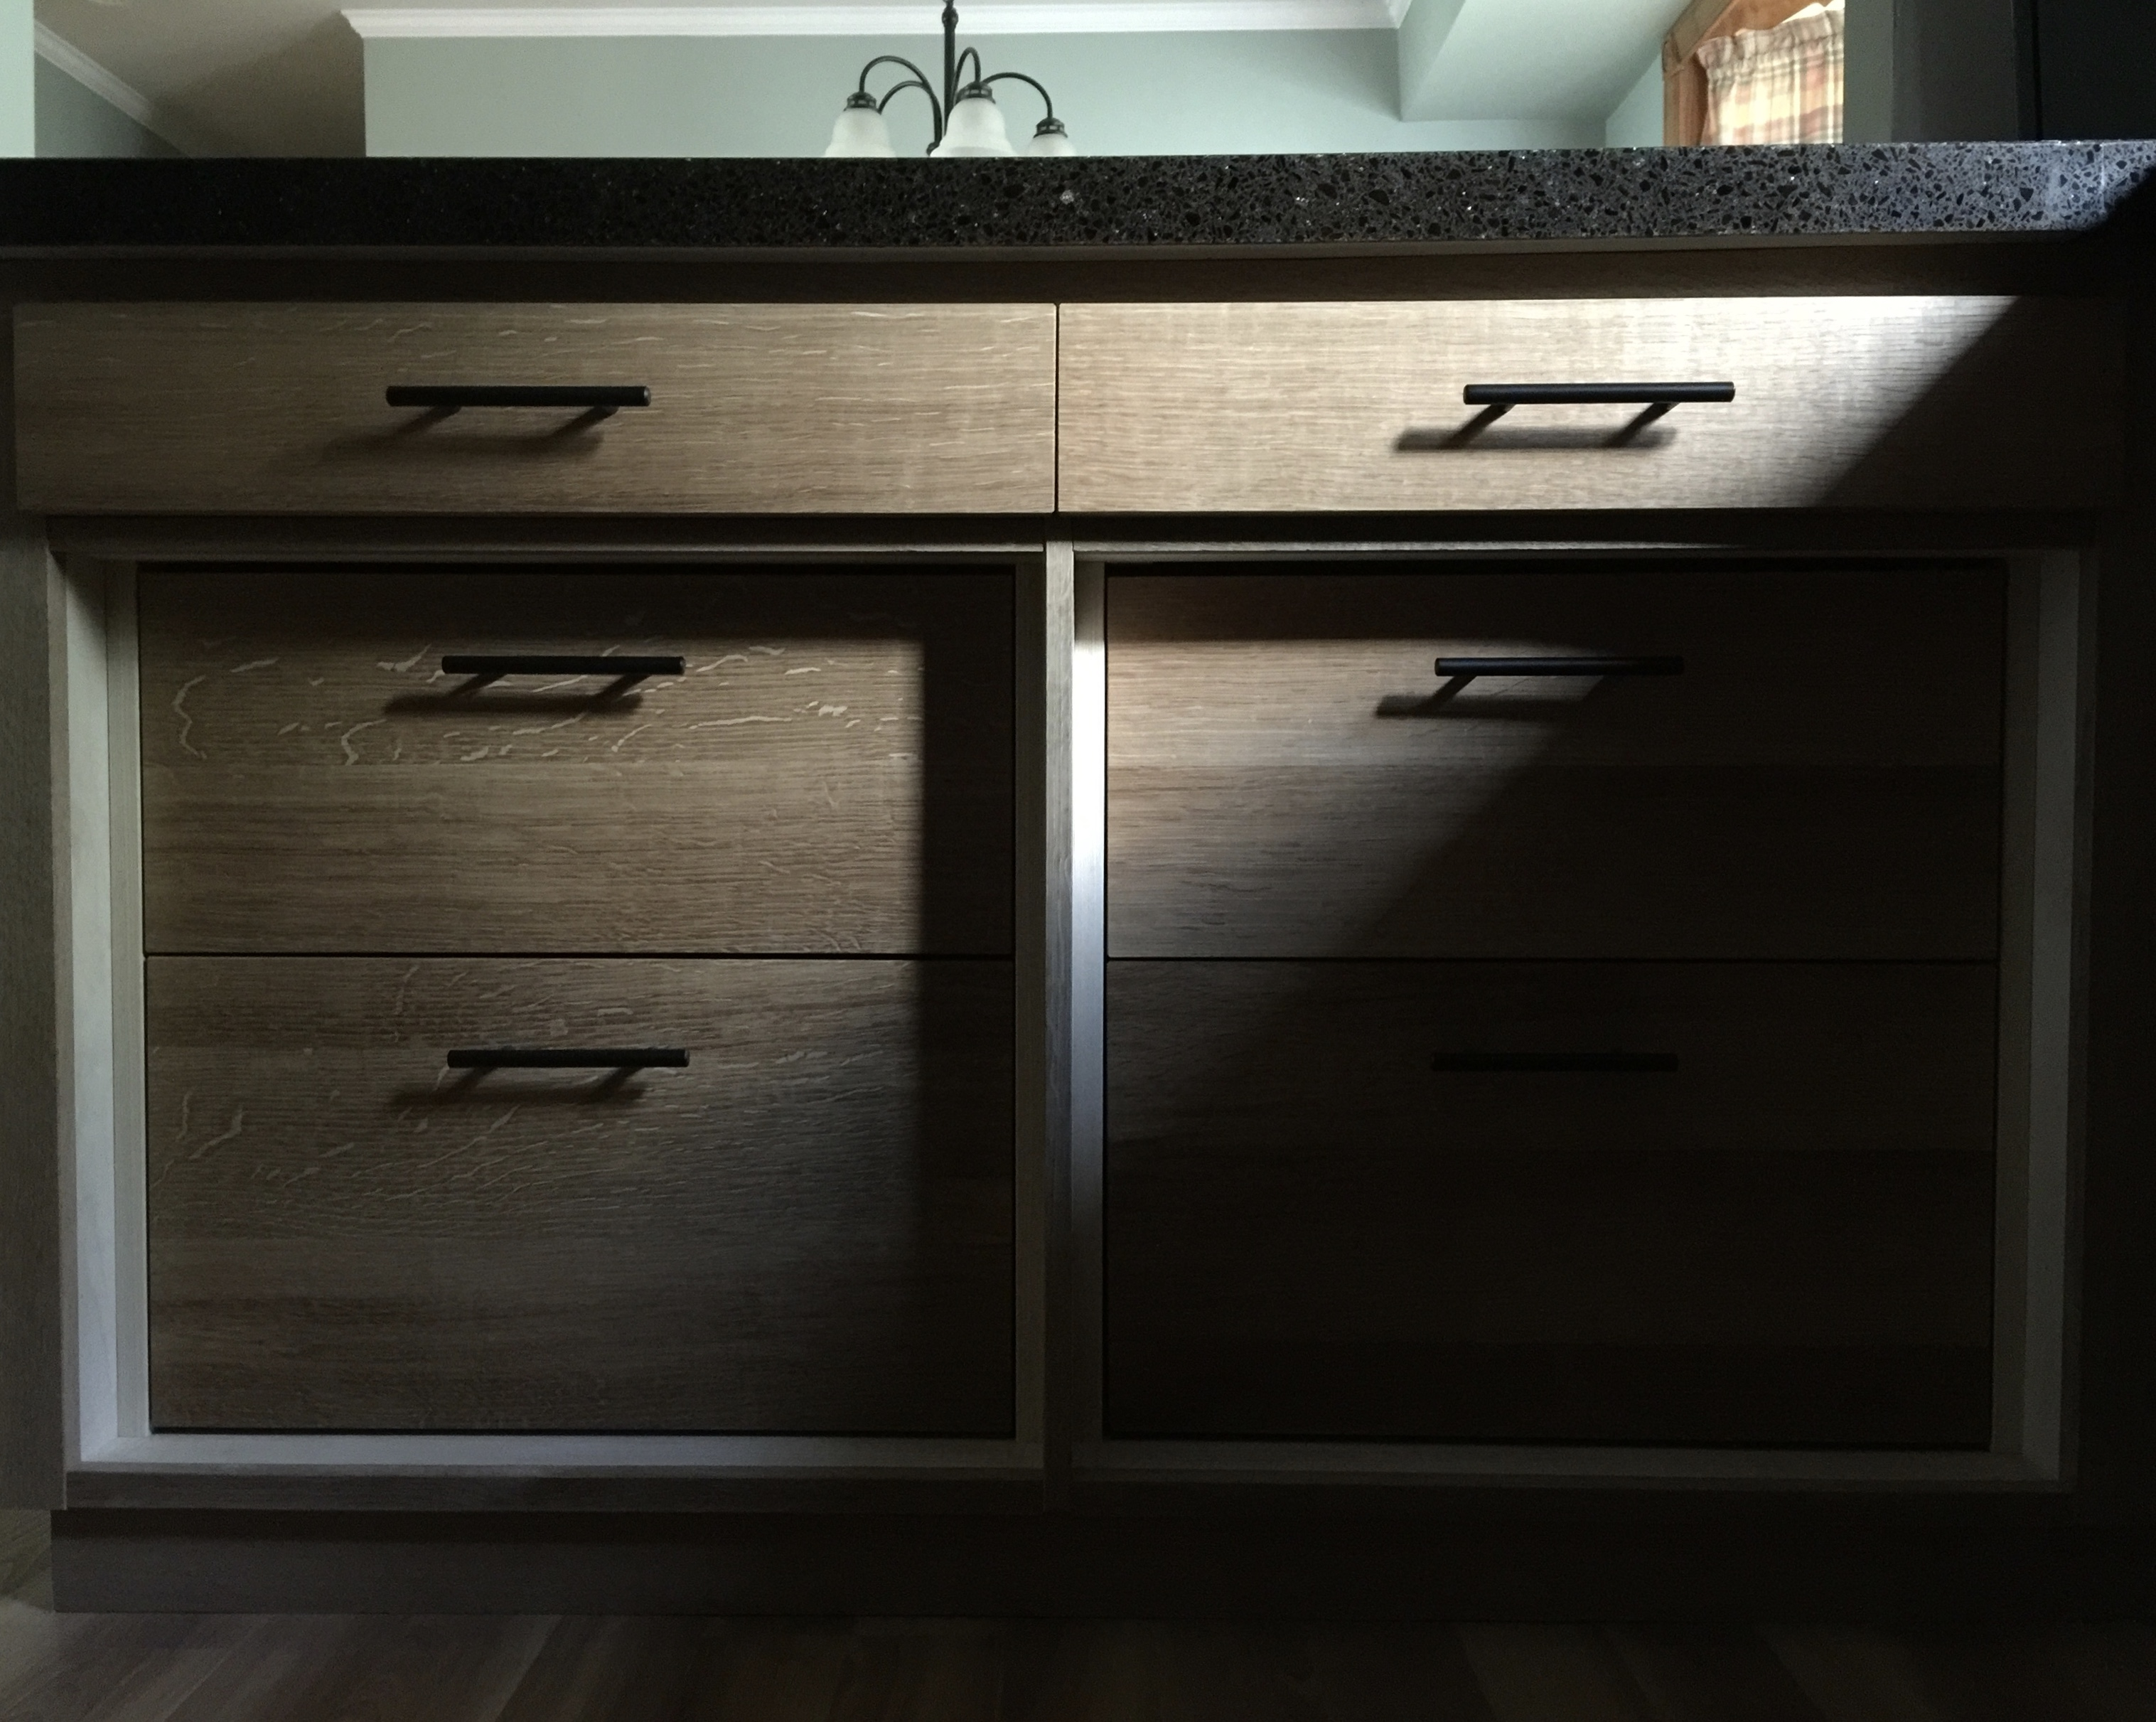 The Kitchen Series – Drawers